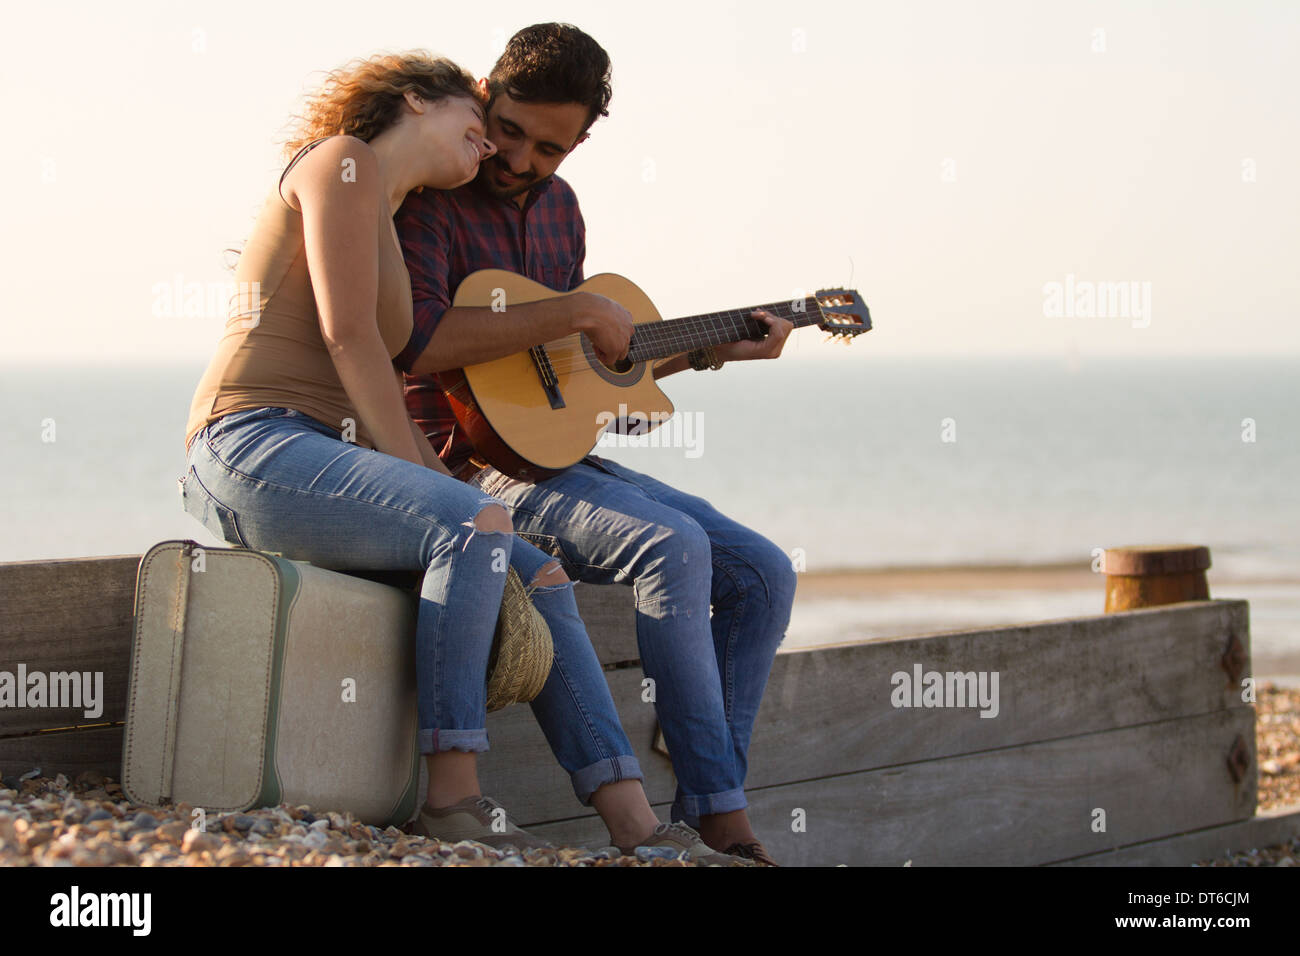 Young couple on beach, man playing guitar Stock Photo